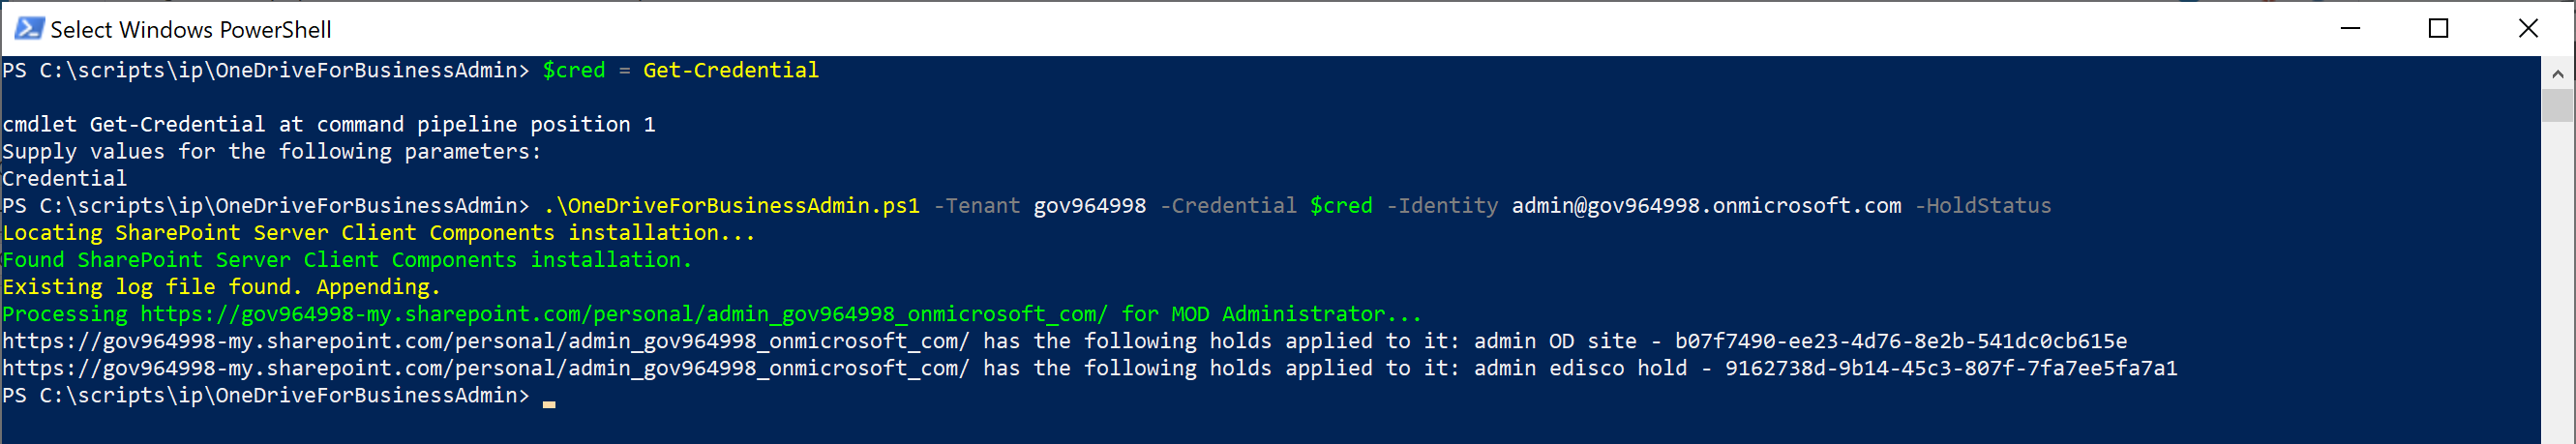 Update to the OneDrive for Business Admin Tool